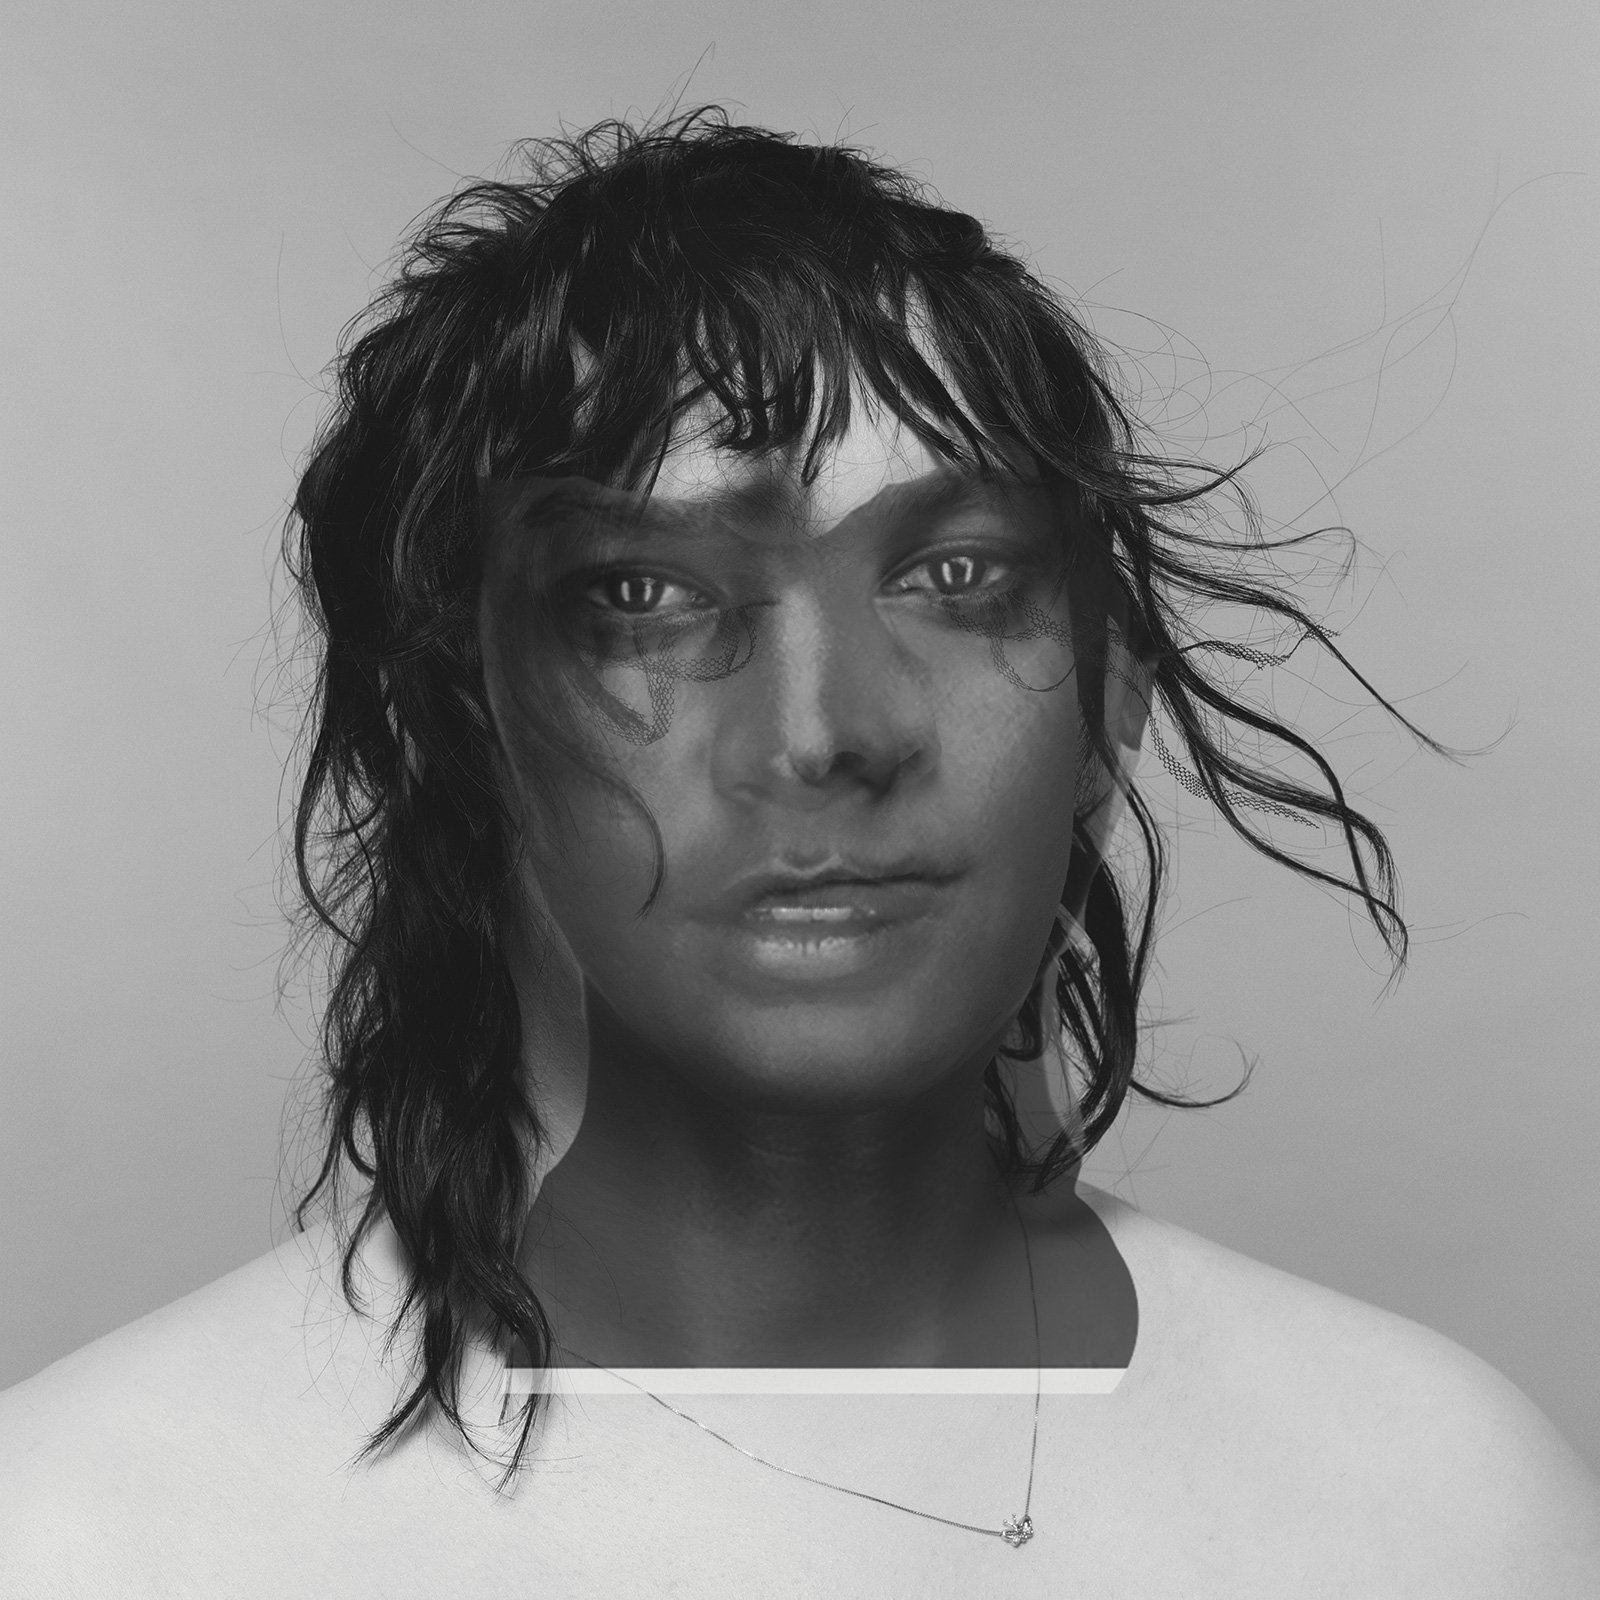 The cover art for ANOHNI's Hopelessness, photographed by Inez van Lamsweerde & Vinoodh Matadin